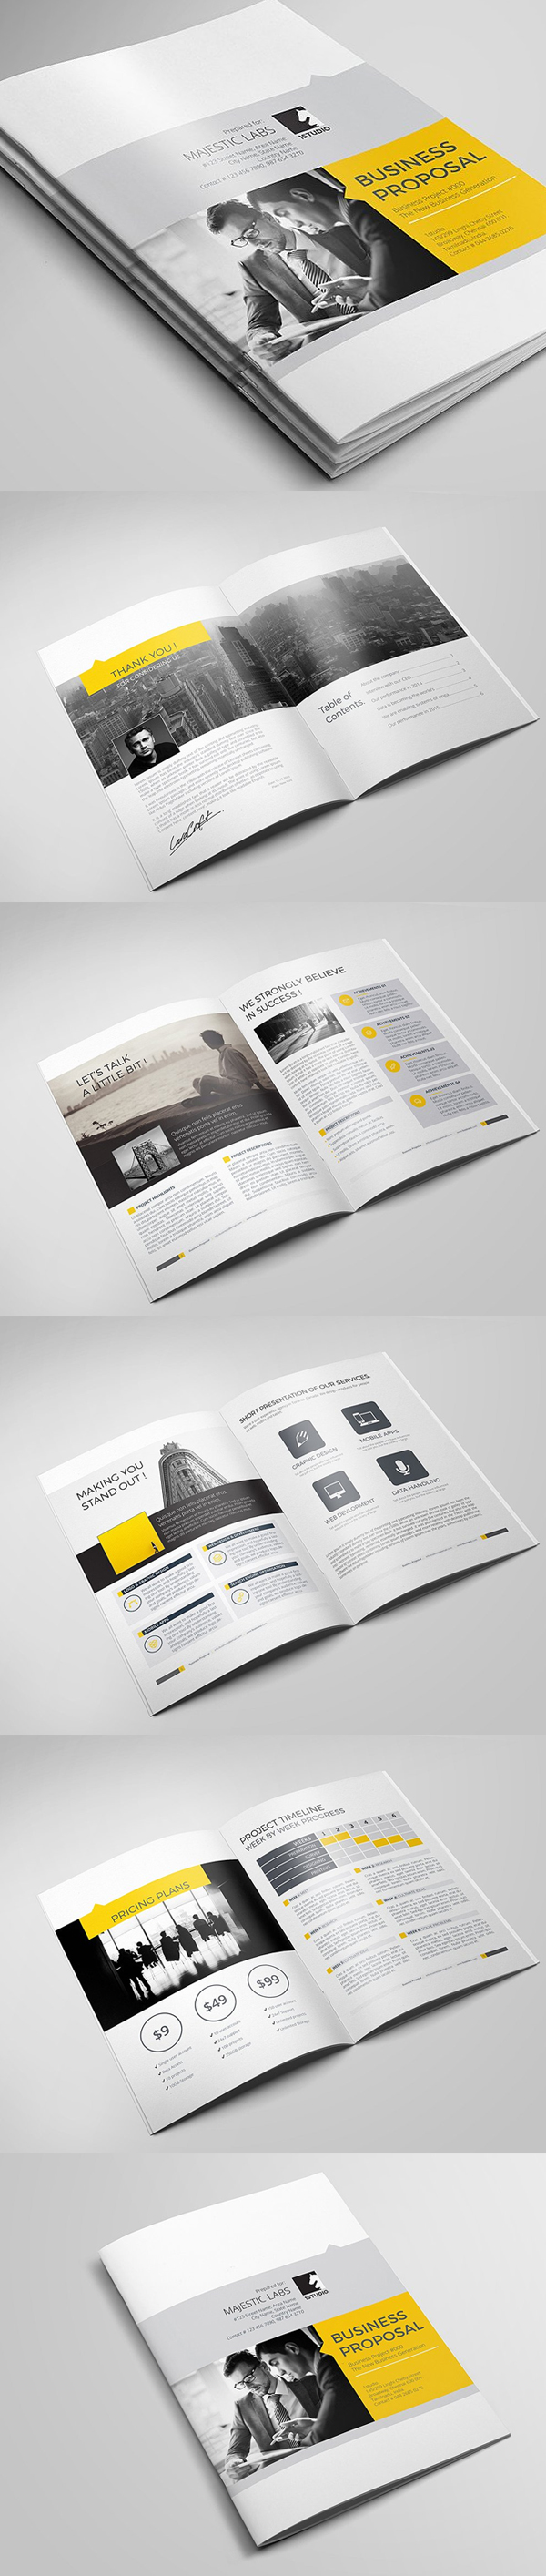 New Brochure Templates Catalog Design   Design   Graphic Design Junction Business Proposal Brochure Template